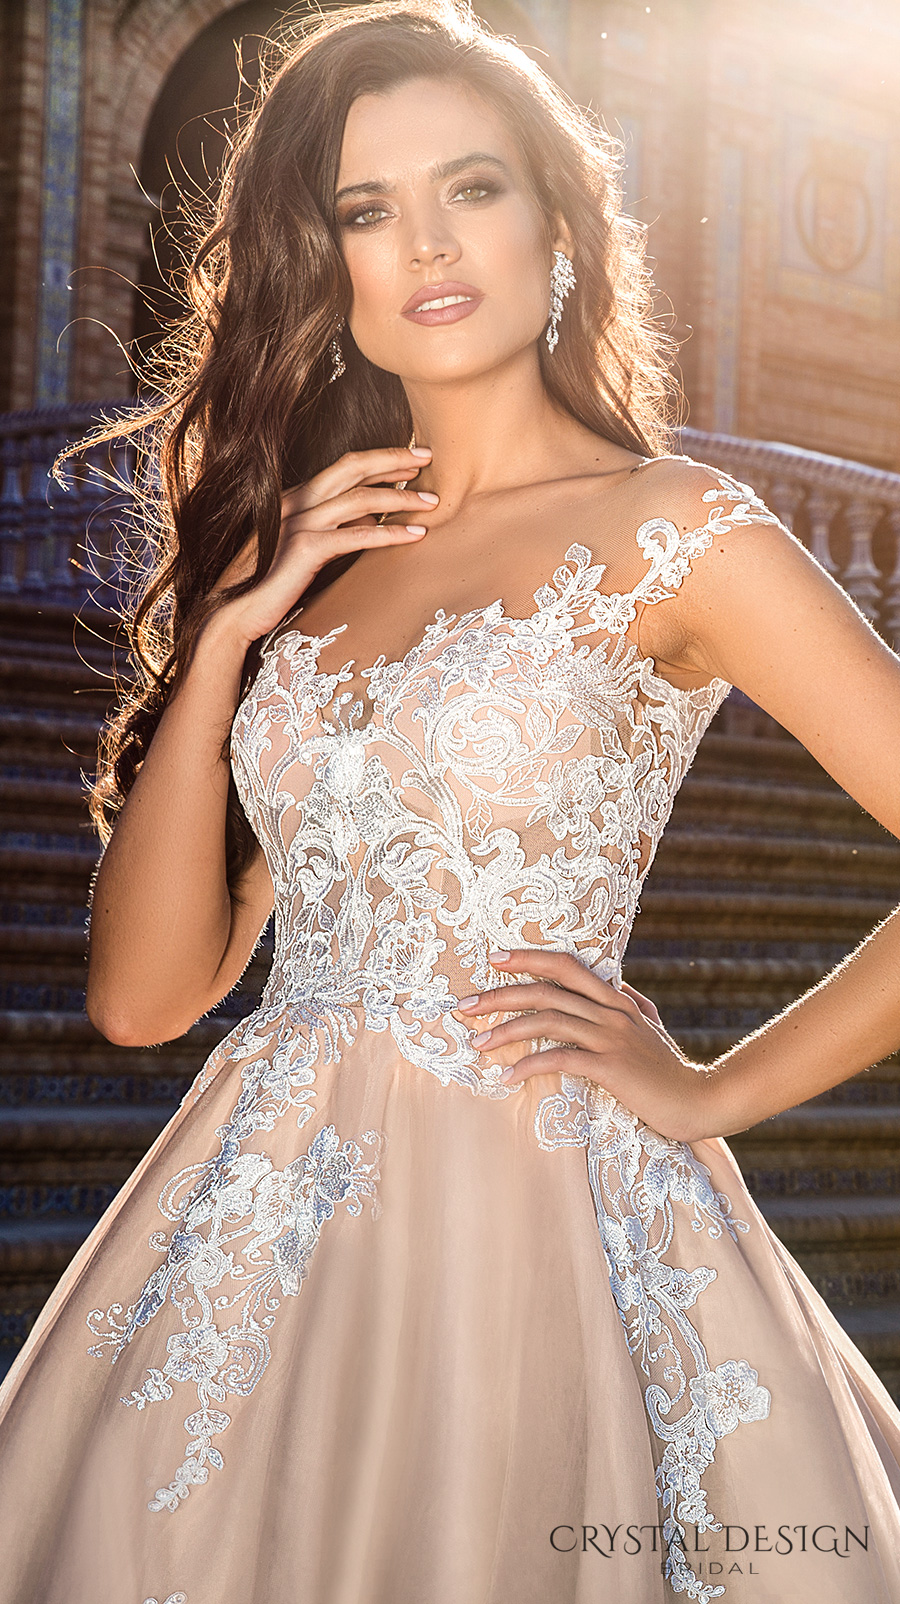 crystal design 2017 bridal illusion off the shoulder cap sleeves sheer boat sweetheart neckline heavily embellished bodice lace blush princess ball gown wedding dress royal train (jill) zv